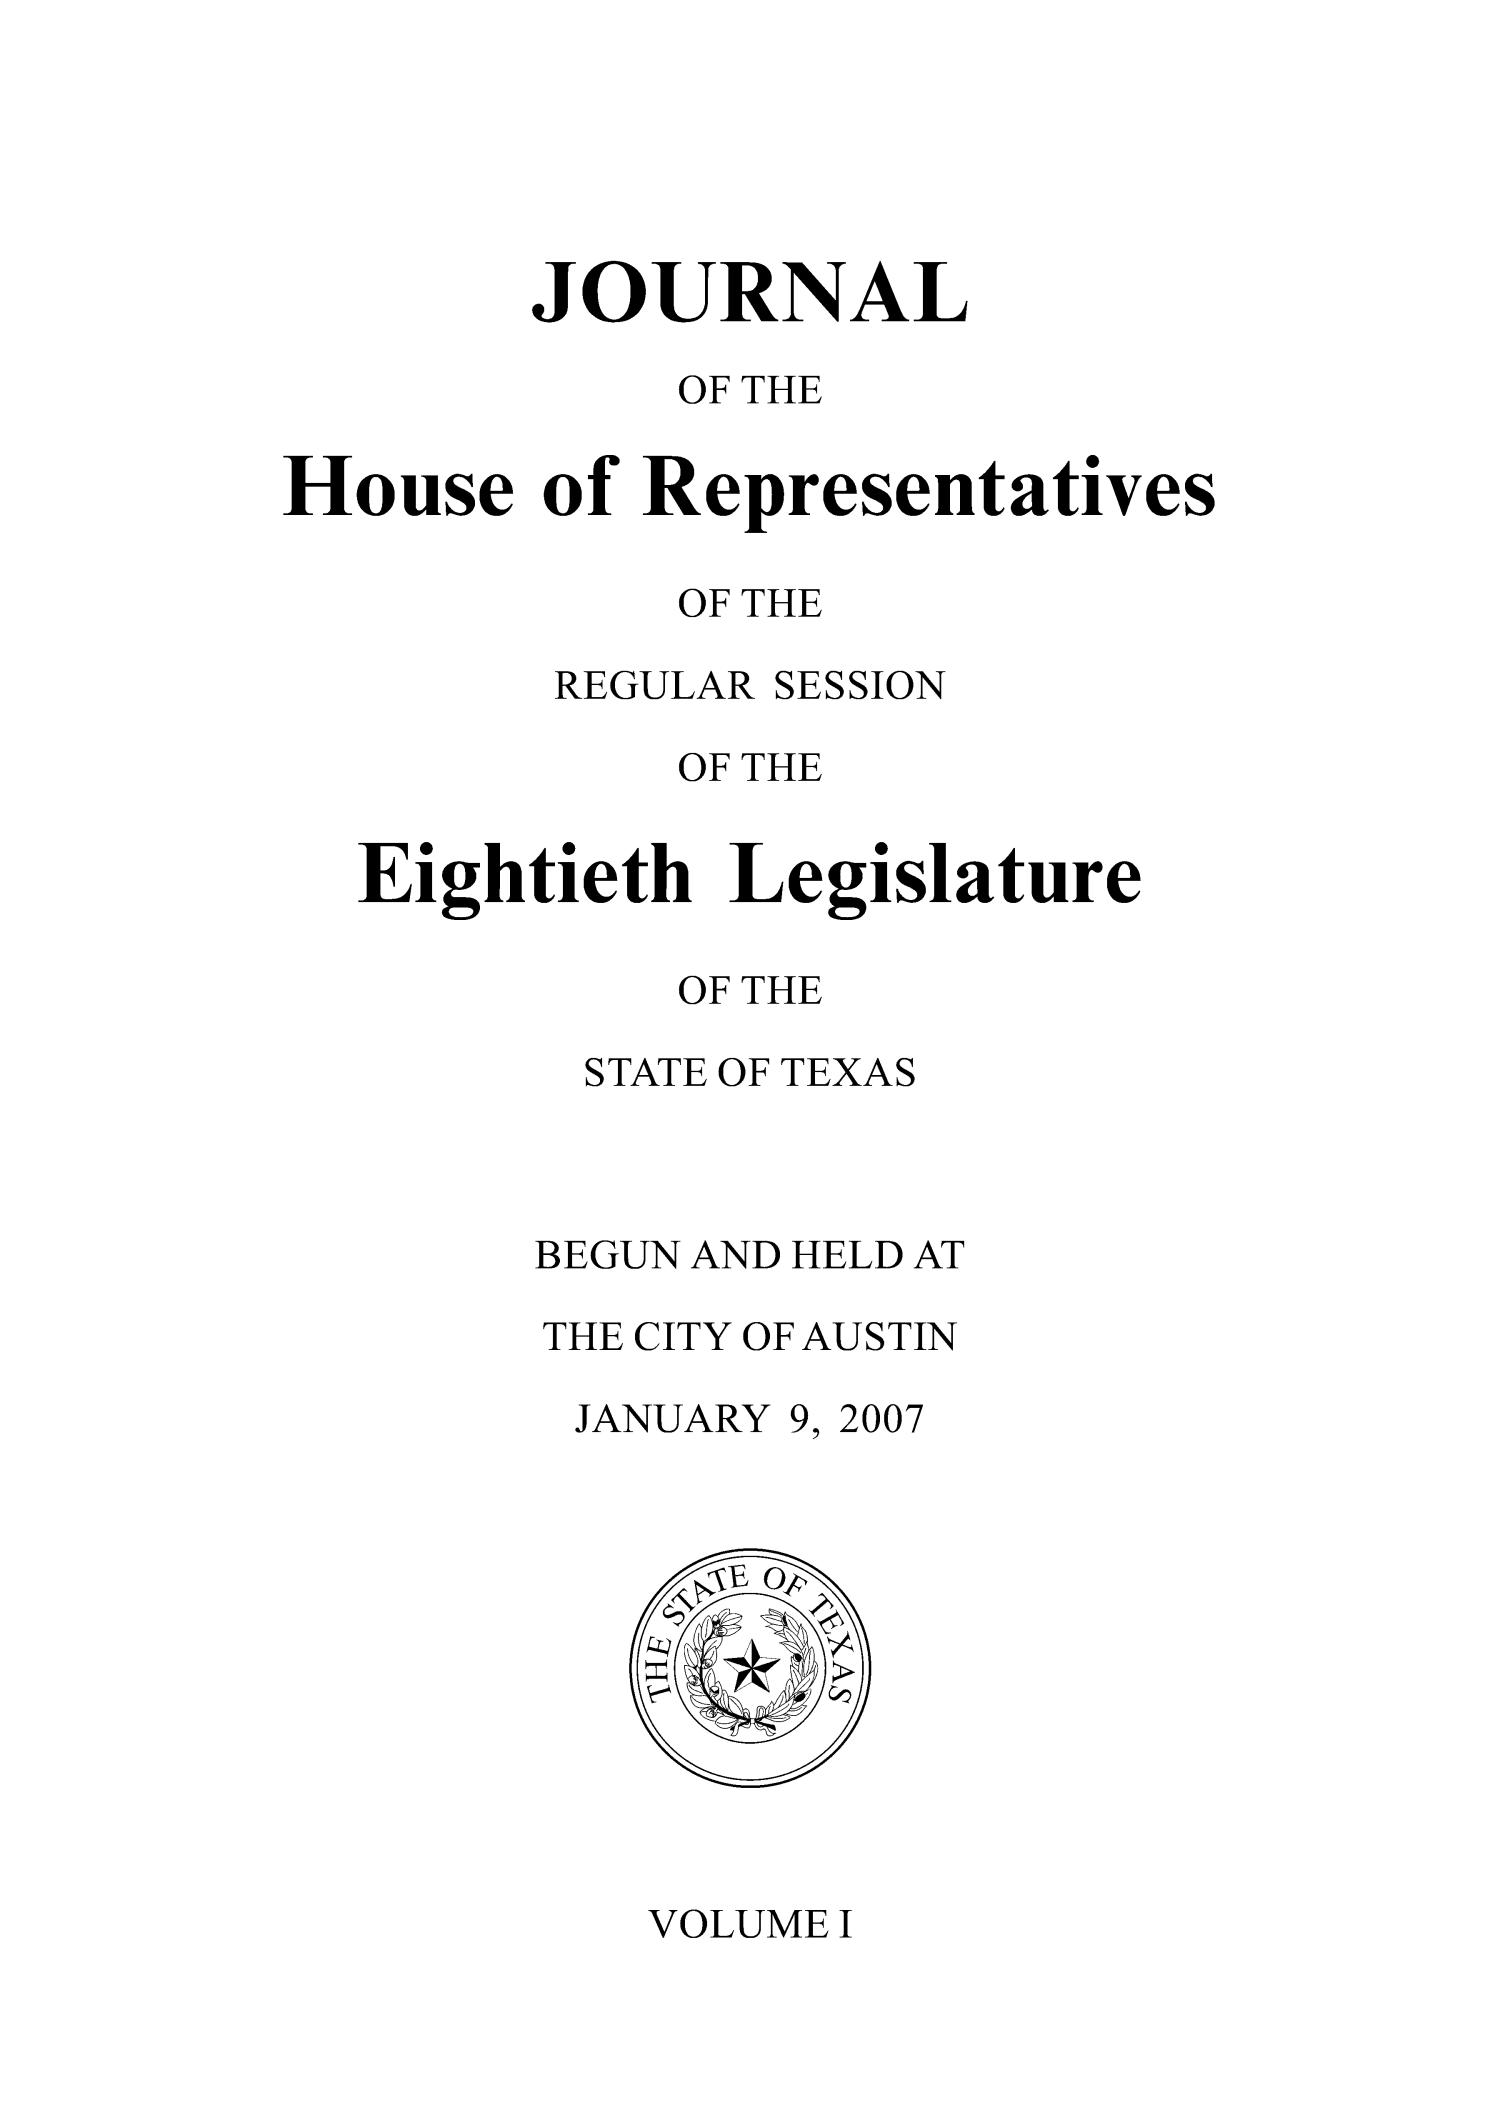 Journal of the House of Representatives of the Regular Session of the Eightieth Legislature of the State of Texas, Volume 1                                                                                                      Title Page